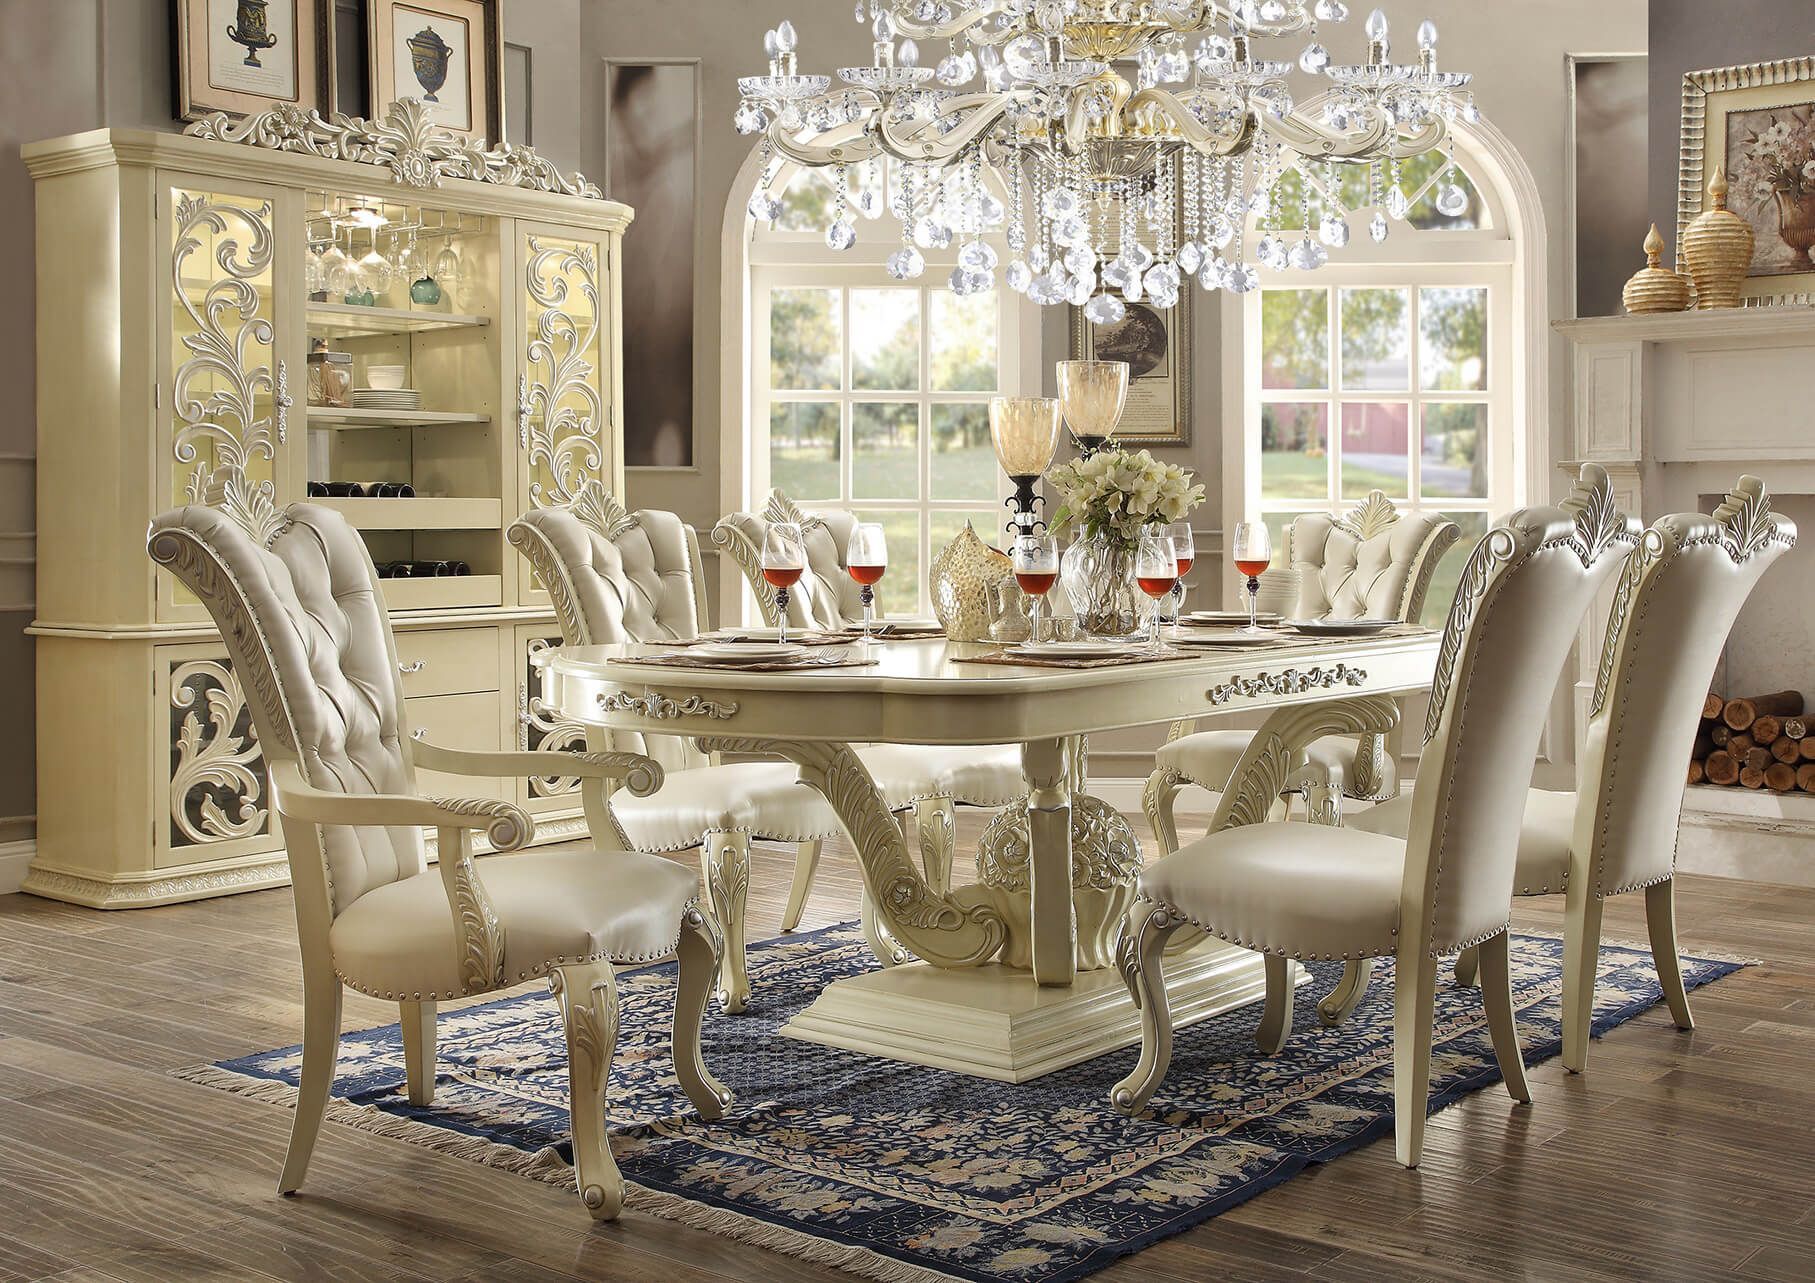 9 Piece Homey Design Marbella Hd 27 Dining Set In 2019